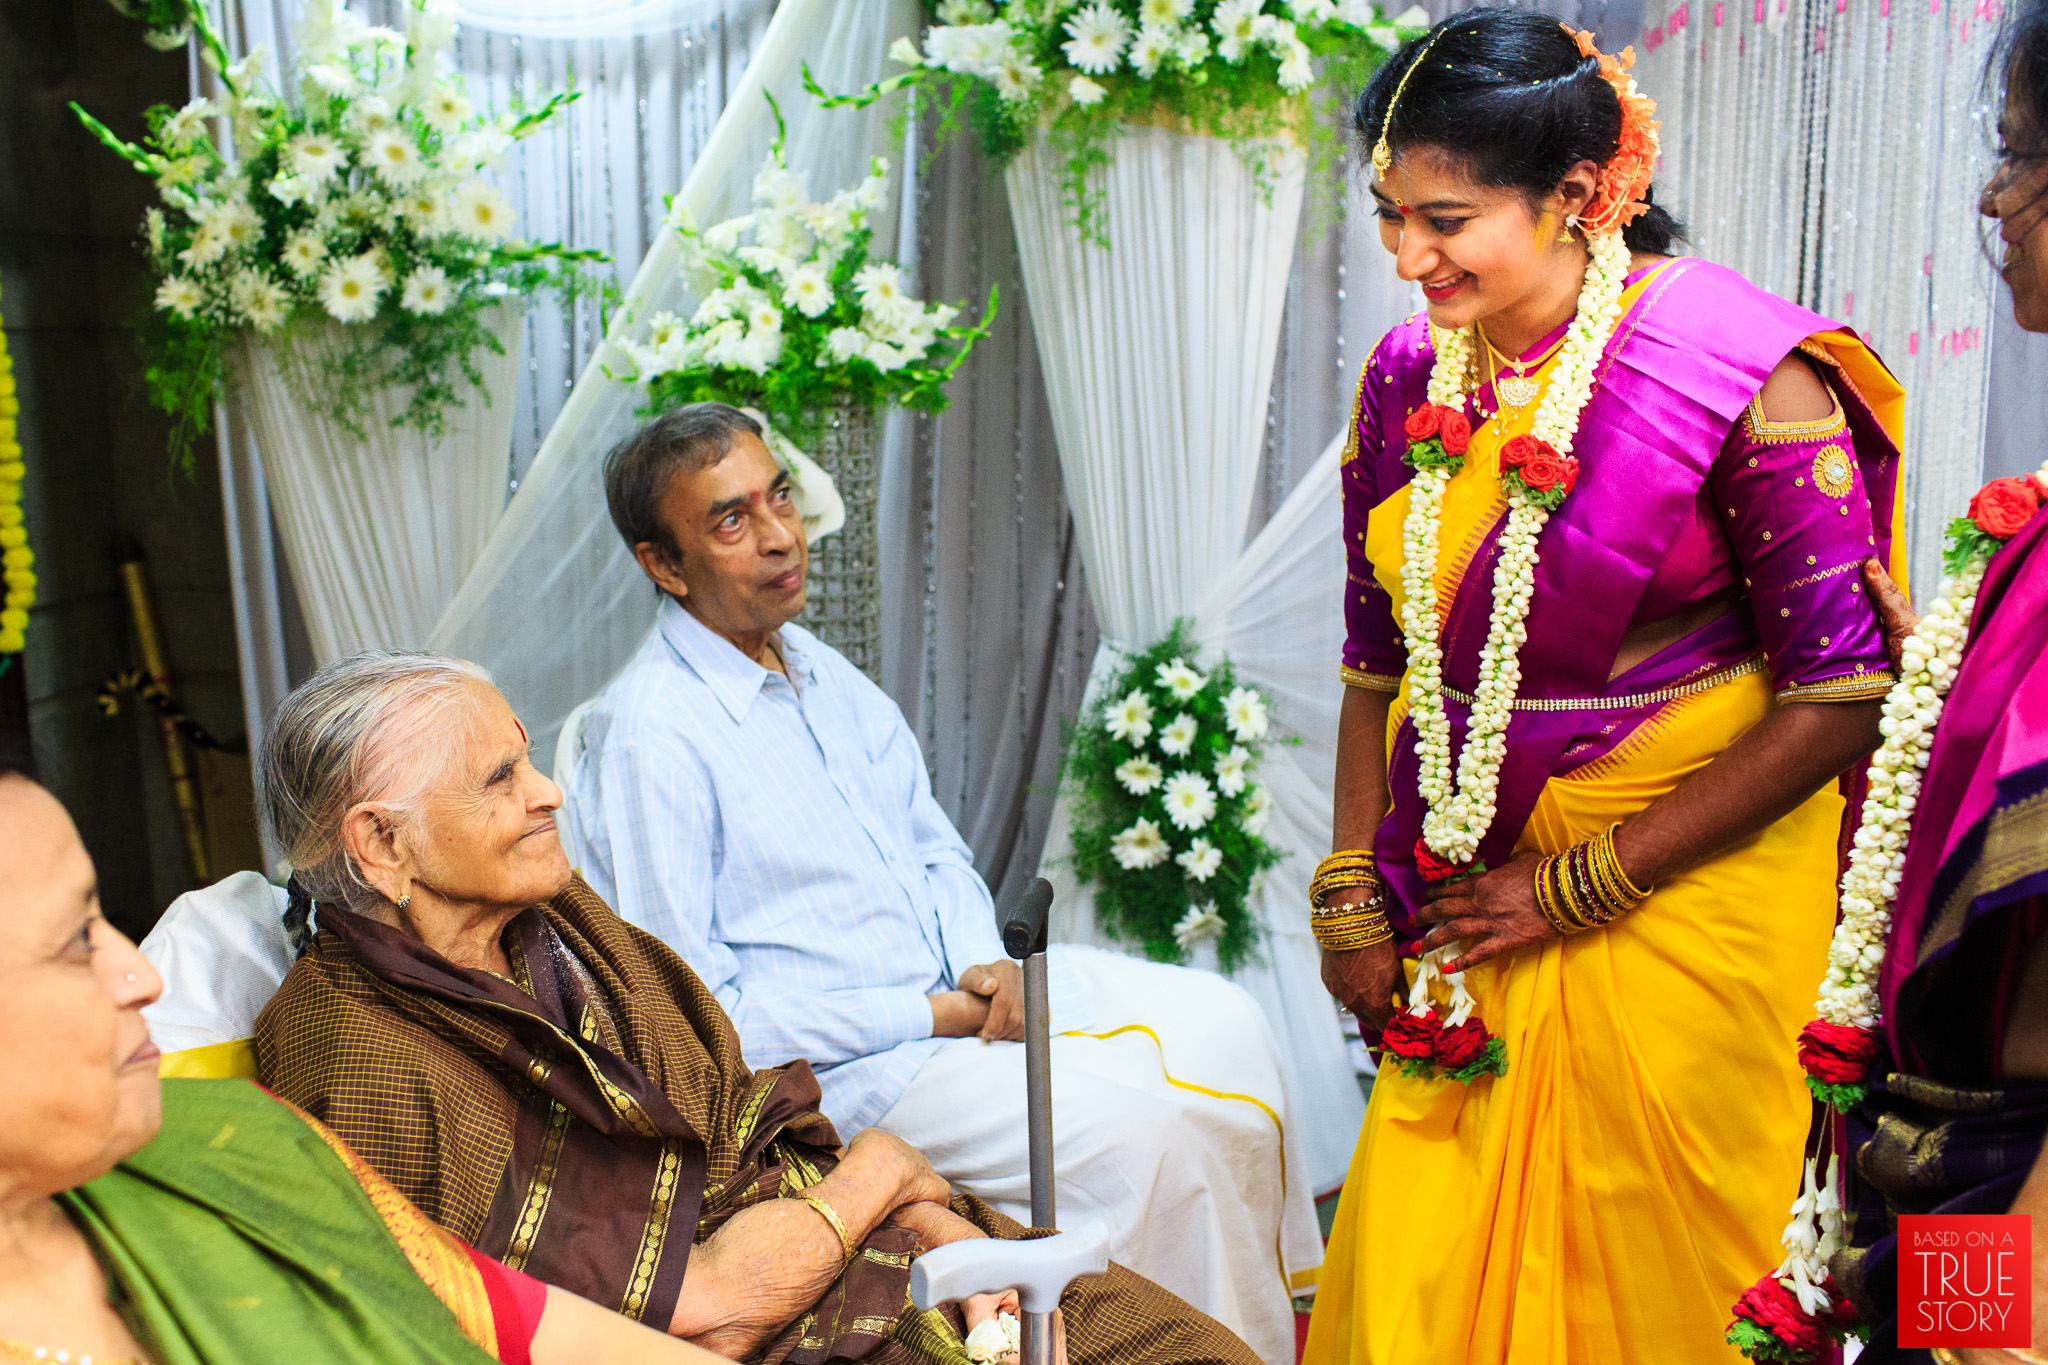 Tambrahm-Candid-Wedding-Photographers-Bangalore-0024.jpg